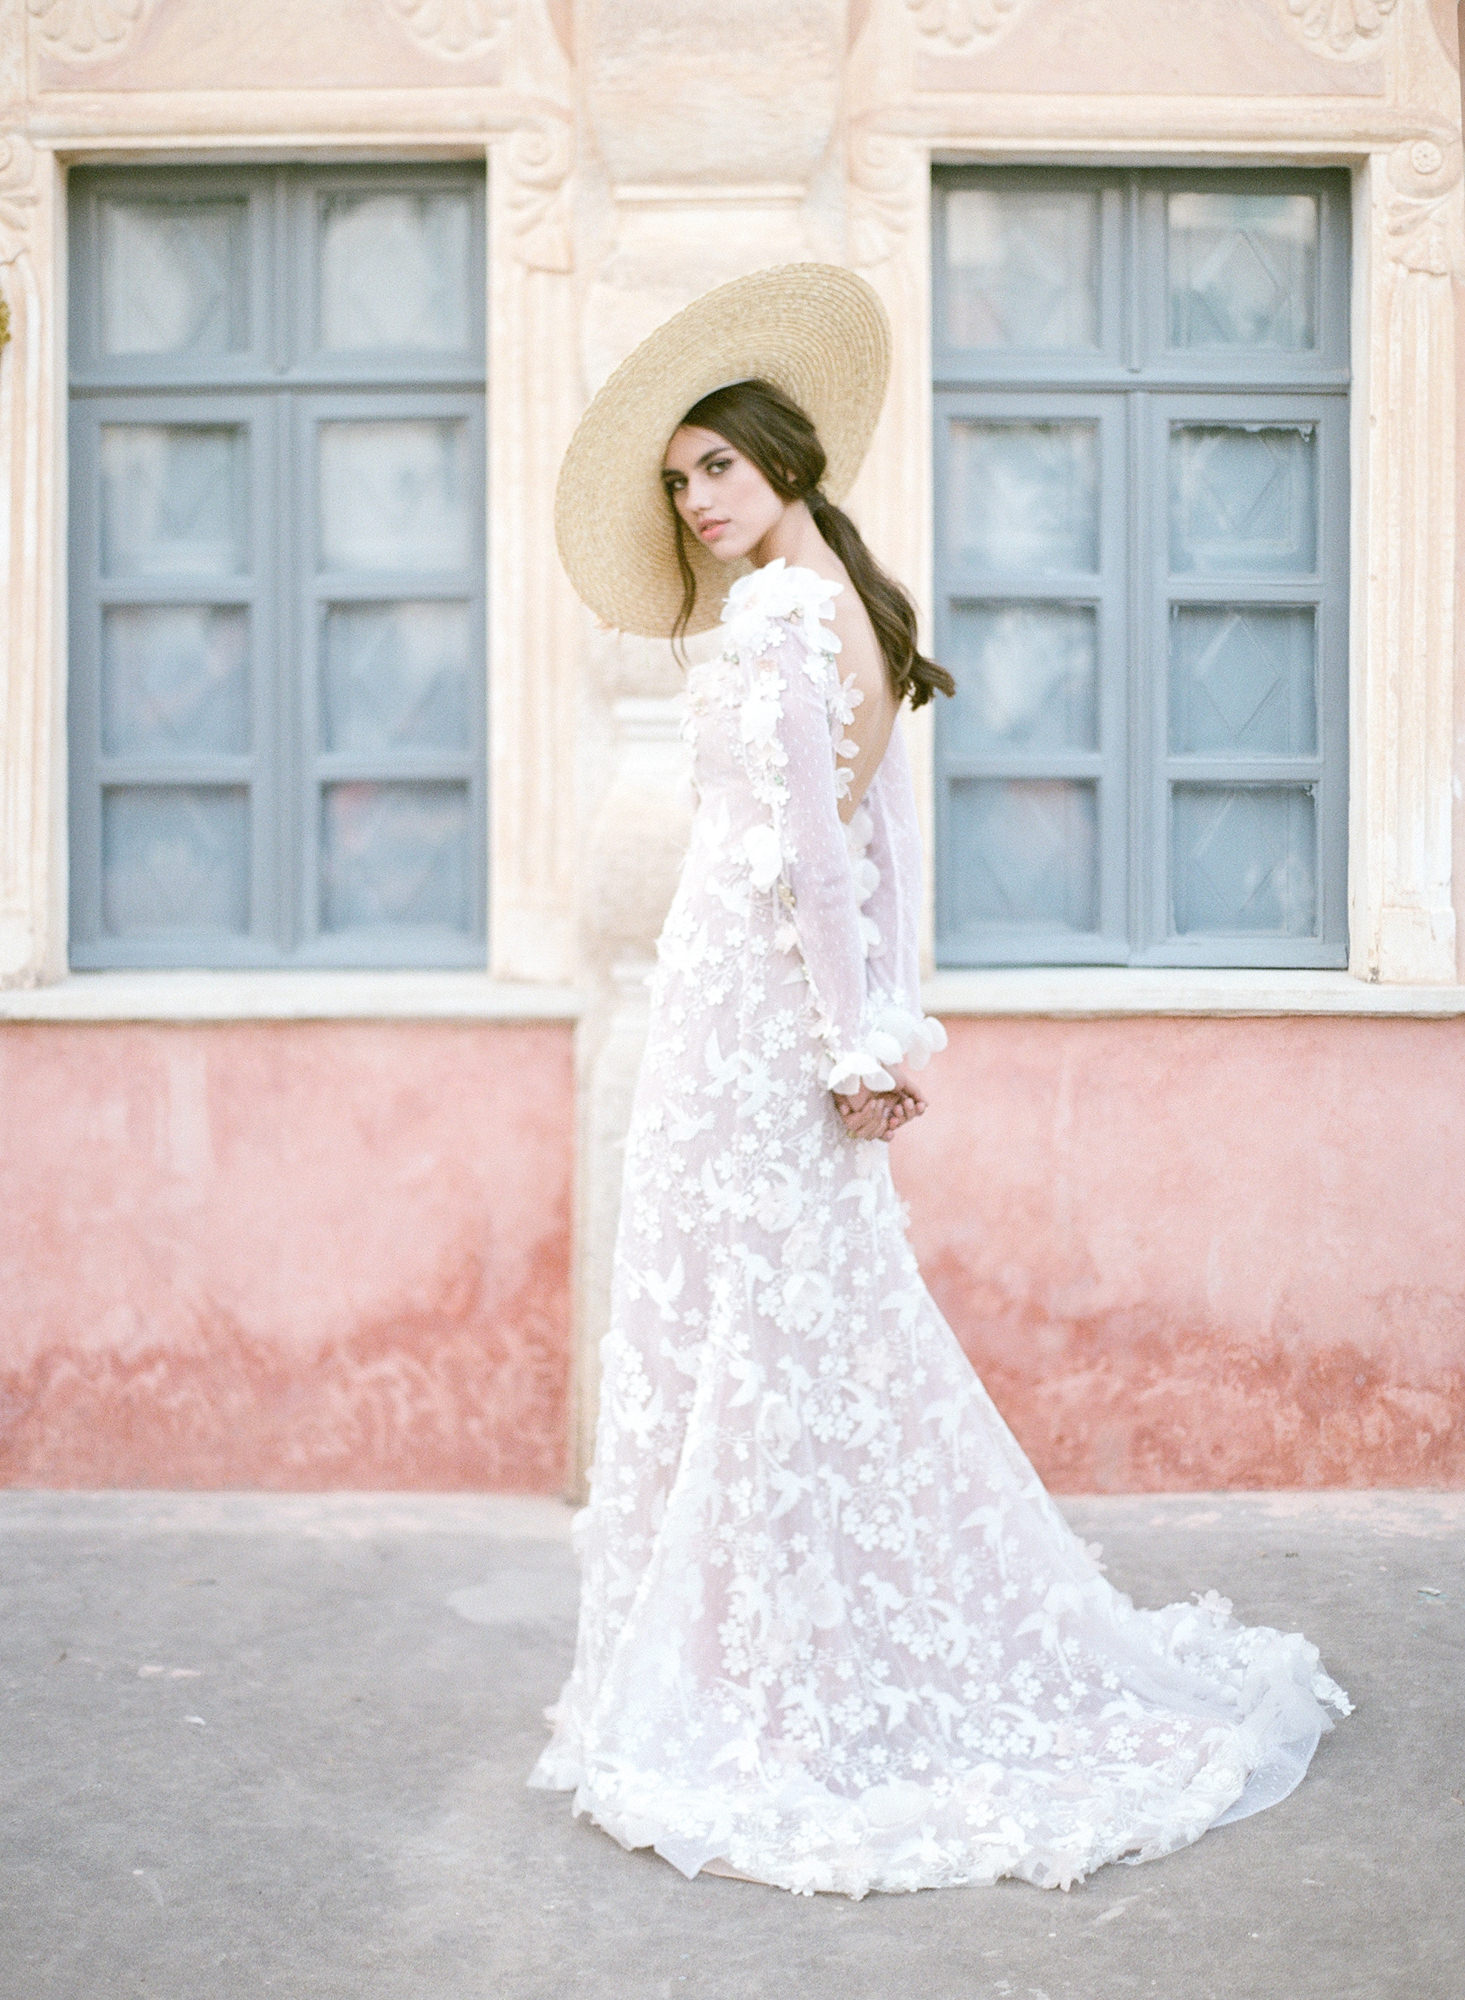 Bride in lace applique dress with large straw hat - photo by Gianluca Adovasio Photography